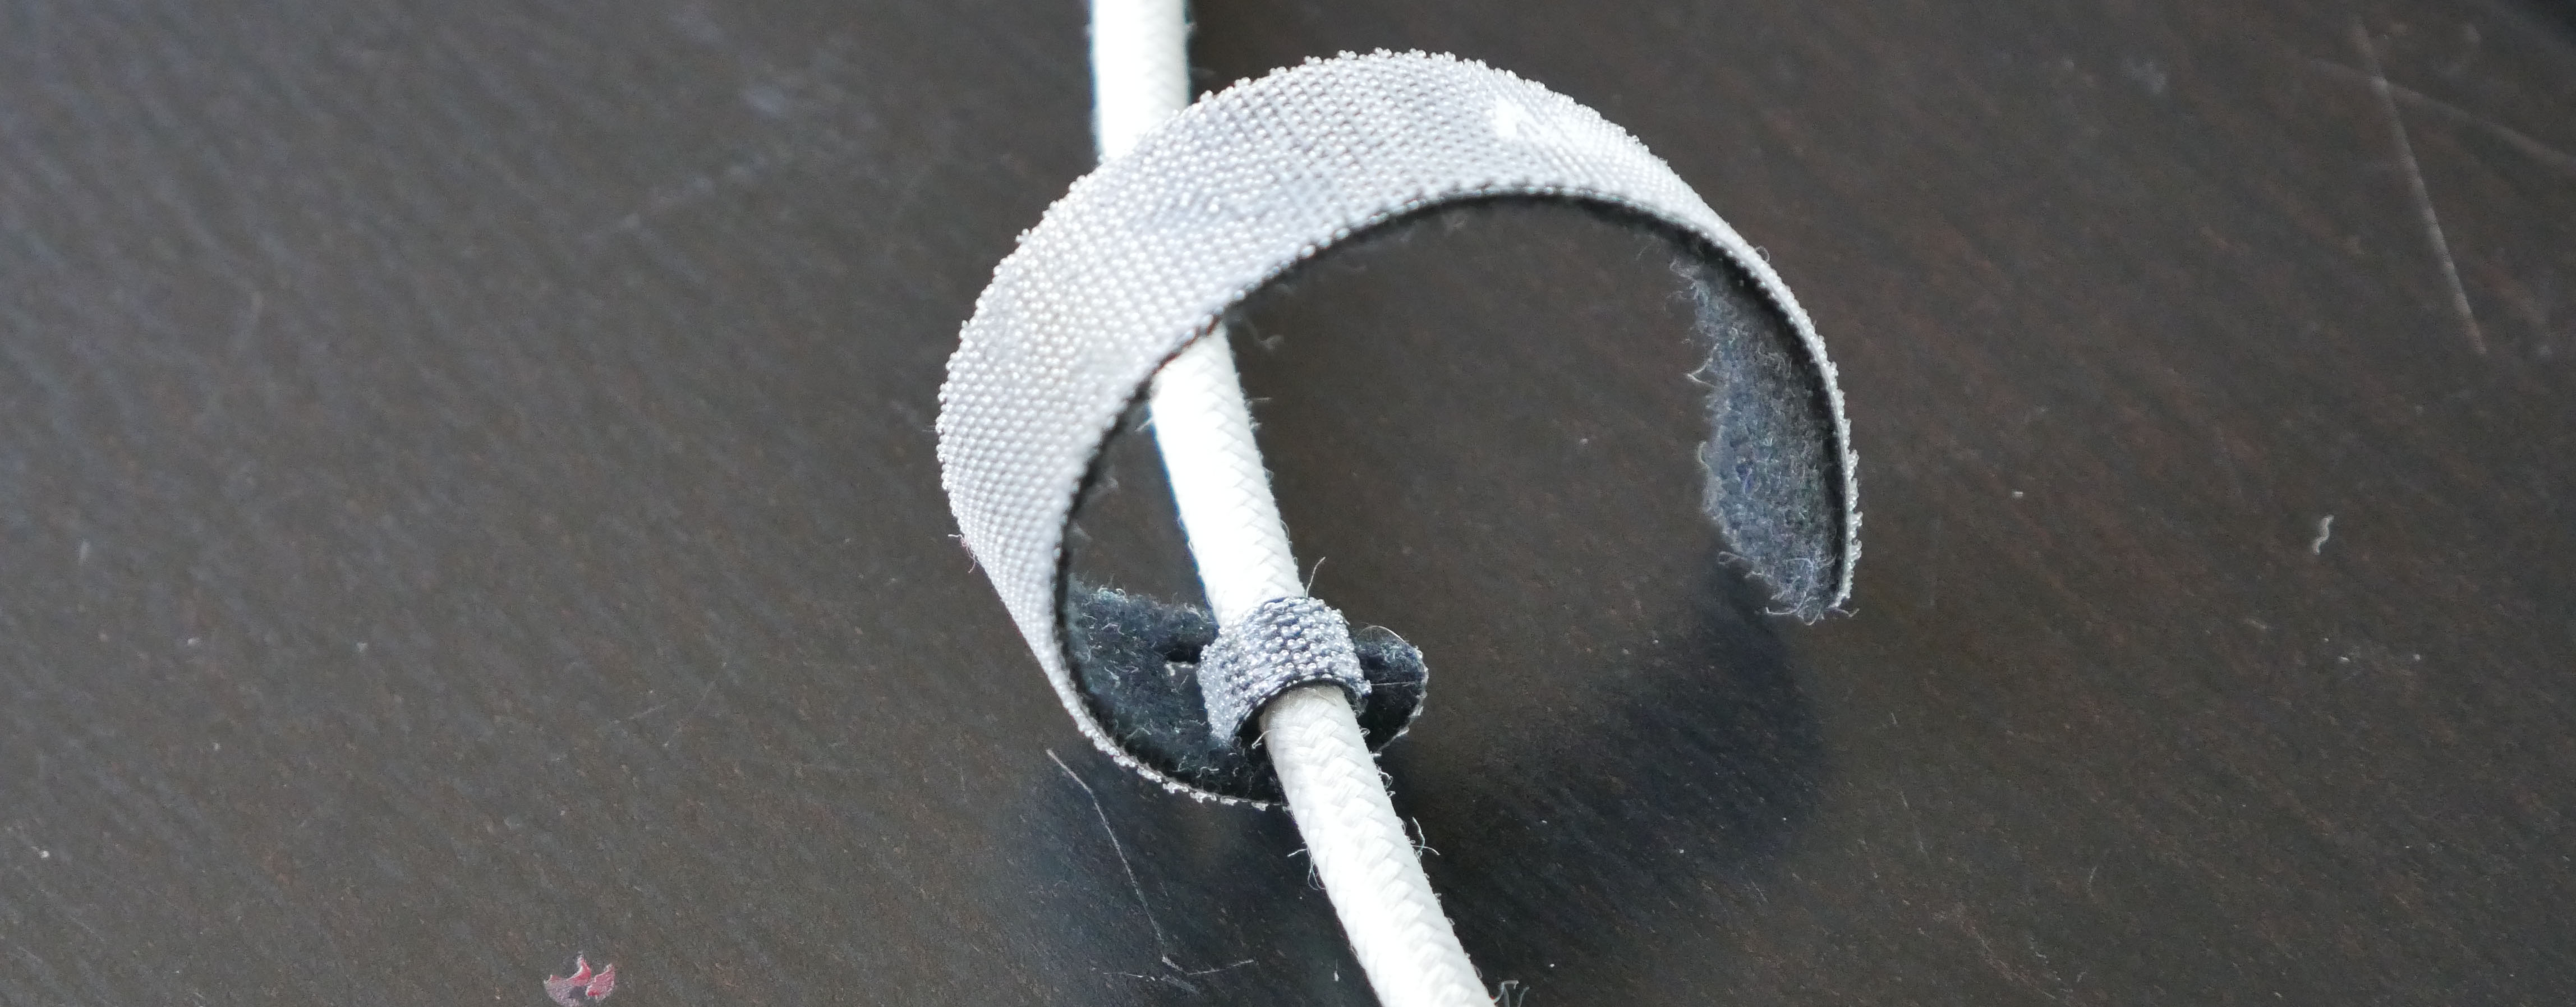 cable-anker-scratch